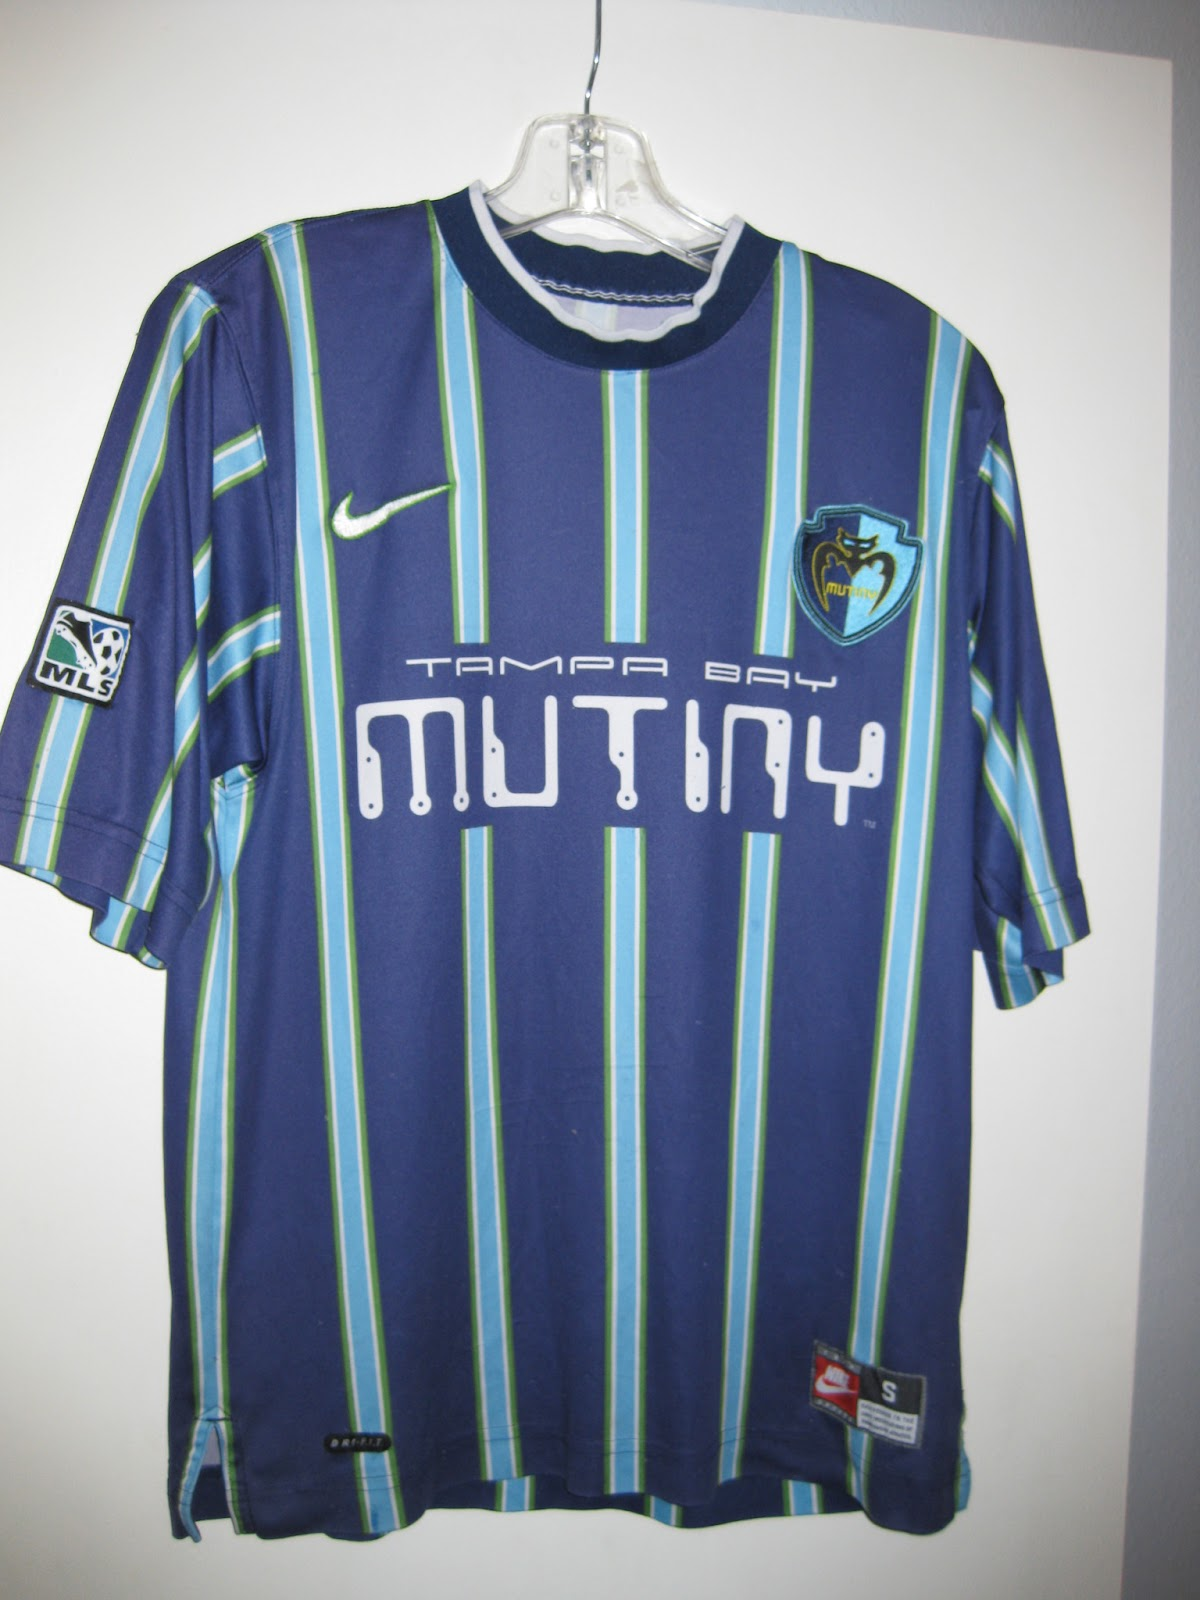 Chris's Soccer Jersey Collection: 1999 Tampa Bay Mutiny Home Jersey